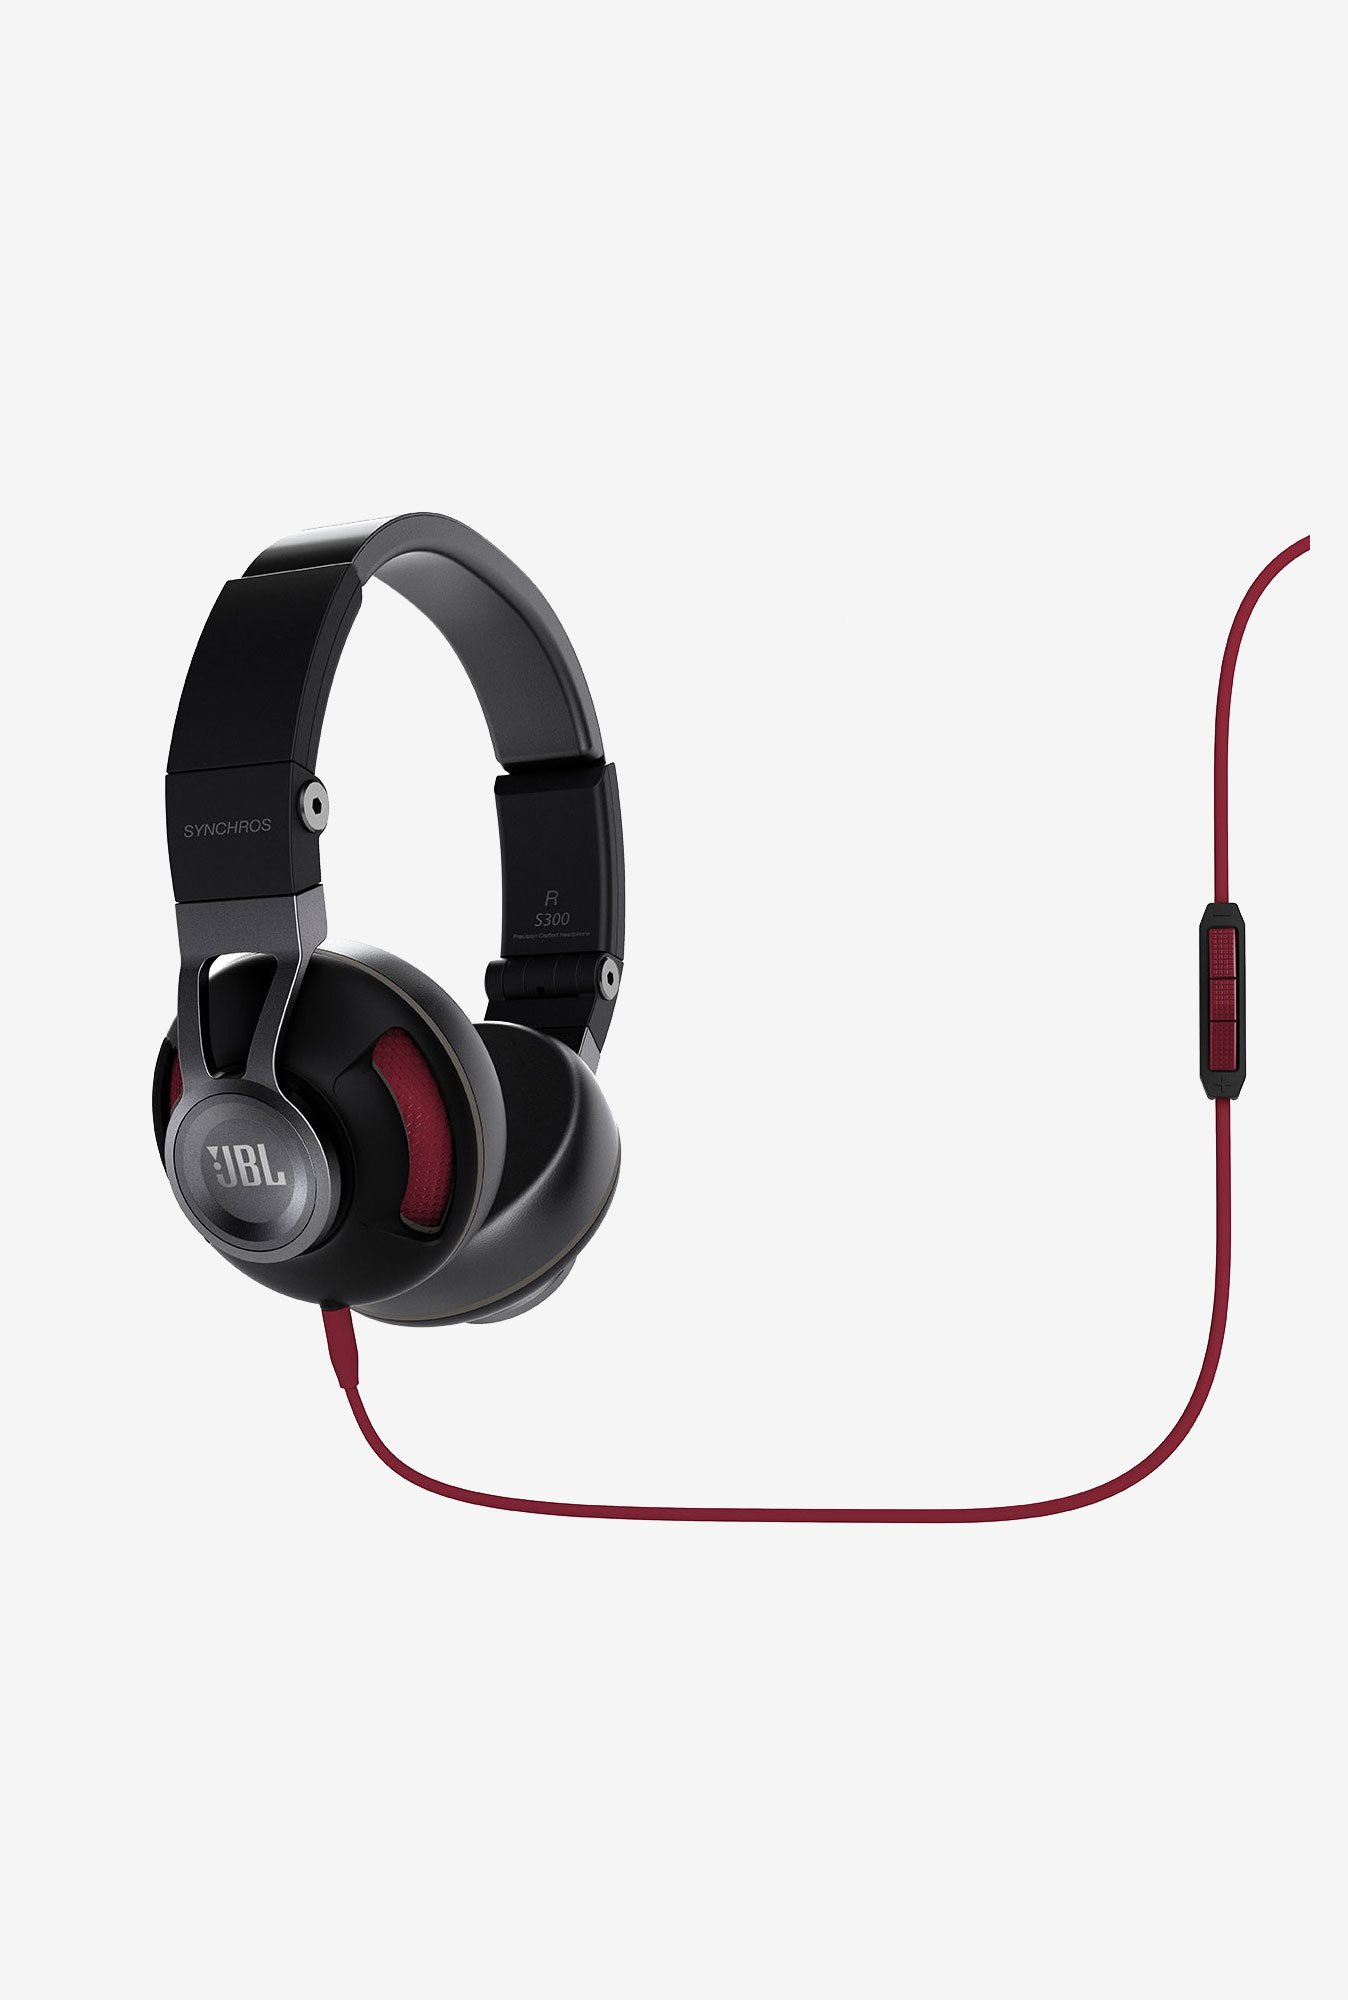 JBL Synchros S300a On the Ear Headphones (Black)